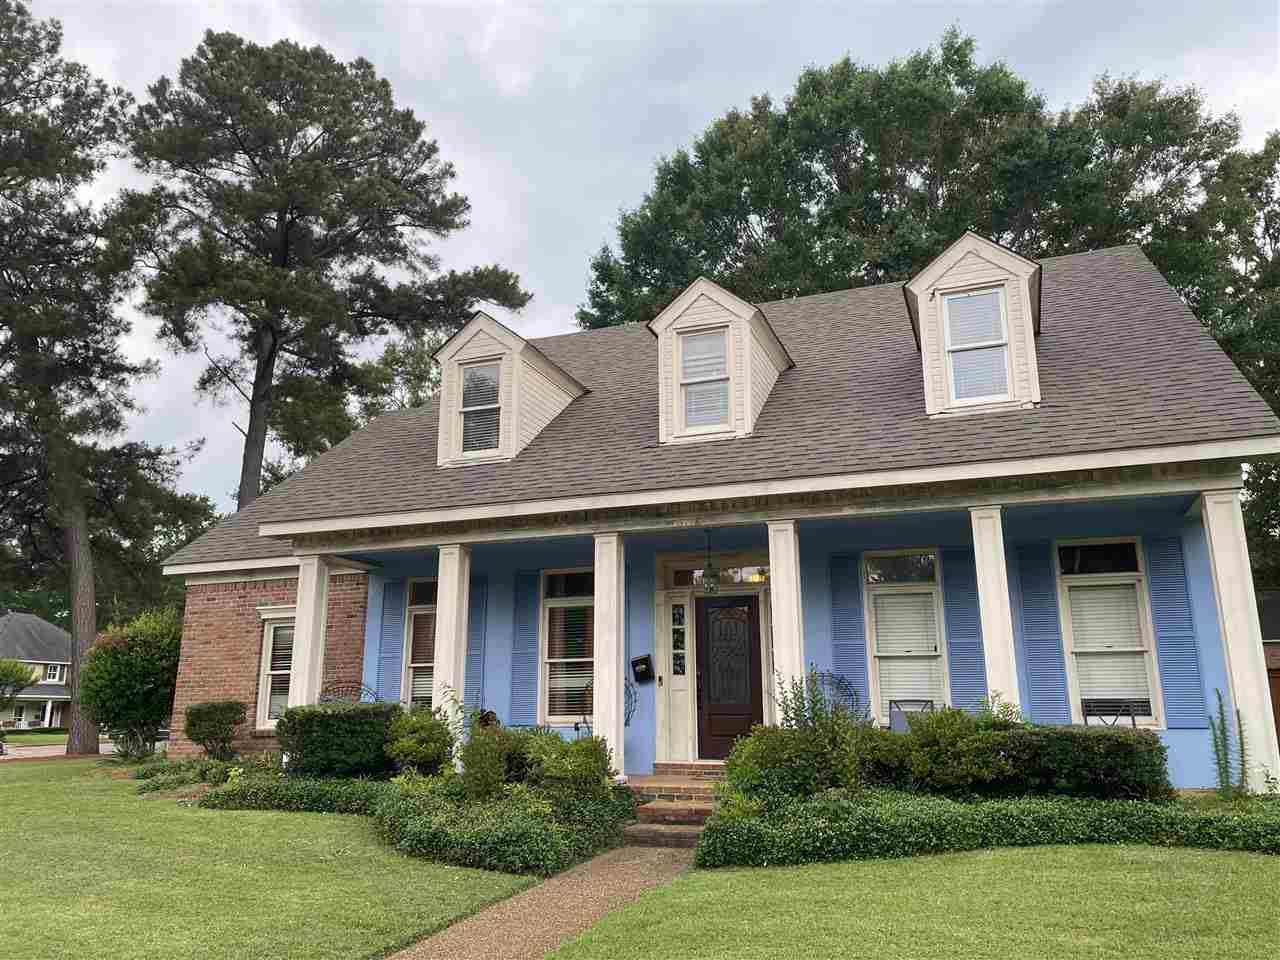 5115 CANTON HEIGHTS DR, Jackson, MS 39211 - MLS#: 341815